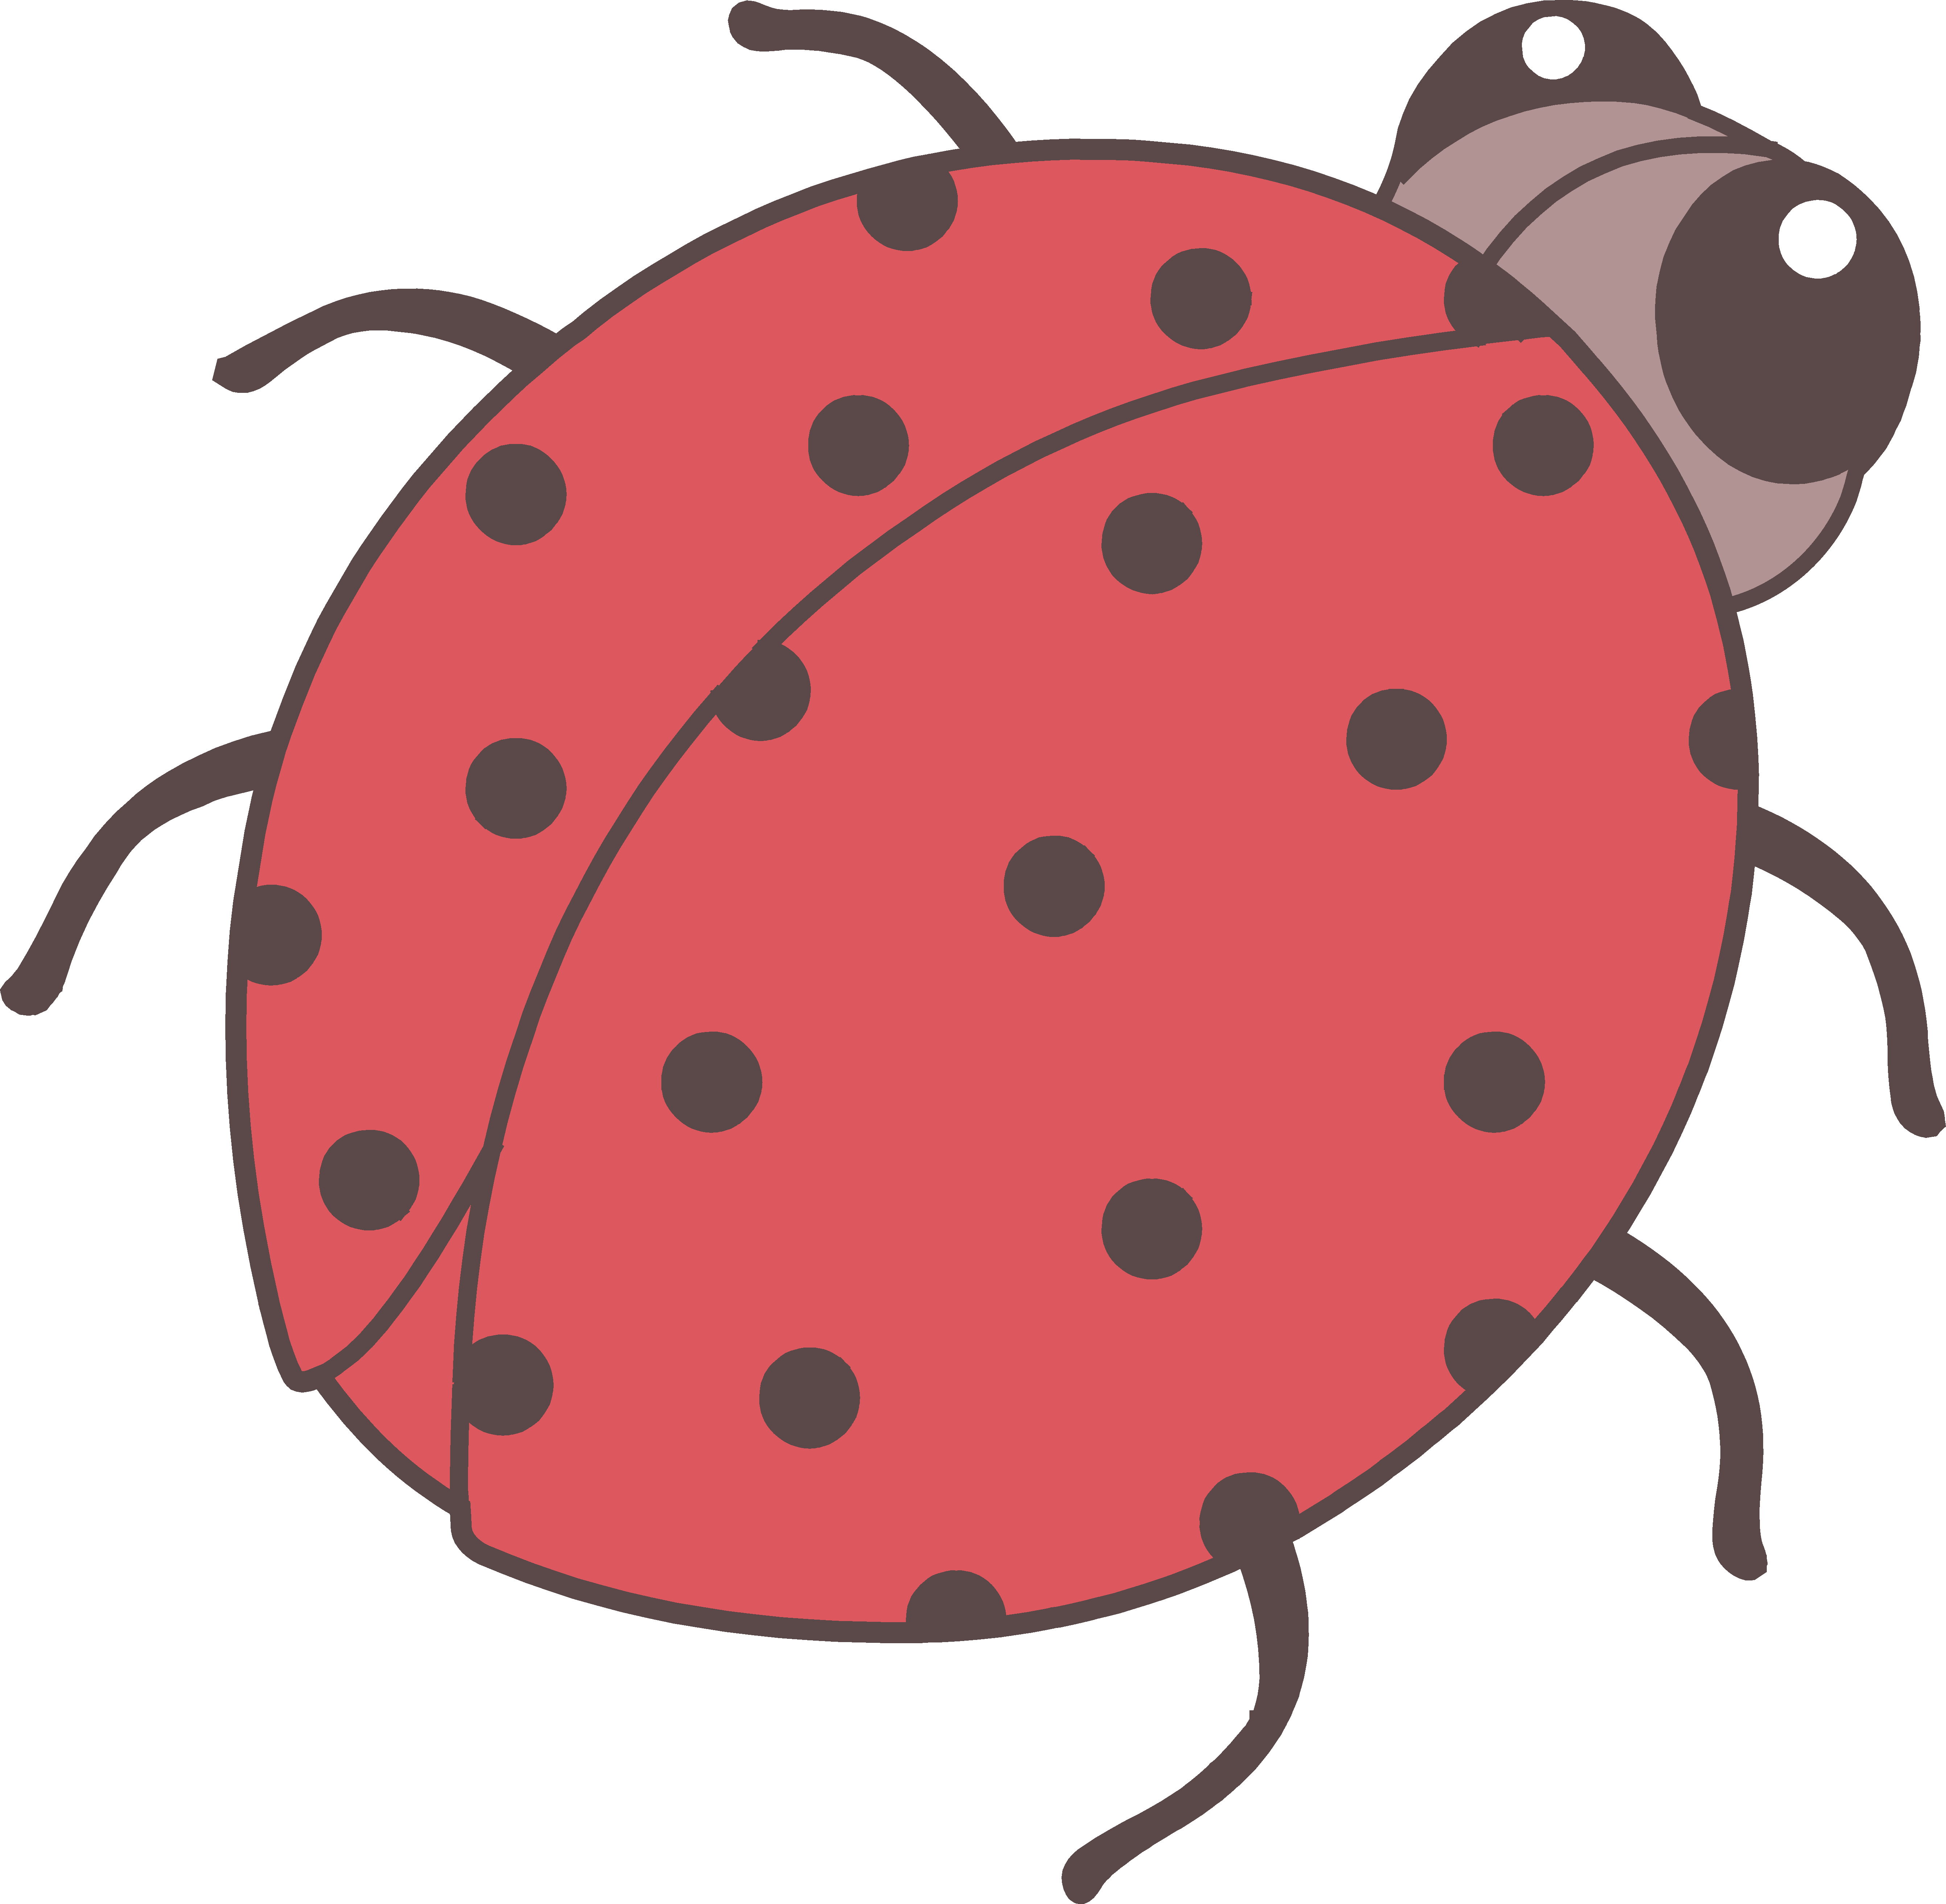 cute bug drawing at getdrawings com free for personal use cute bug rh getdrawings com cute bug clipart black and white